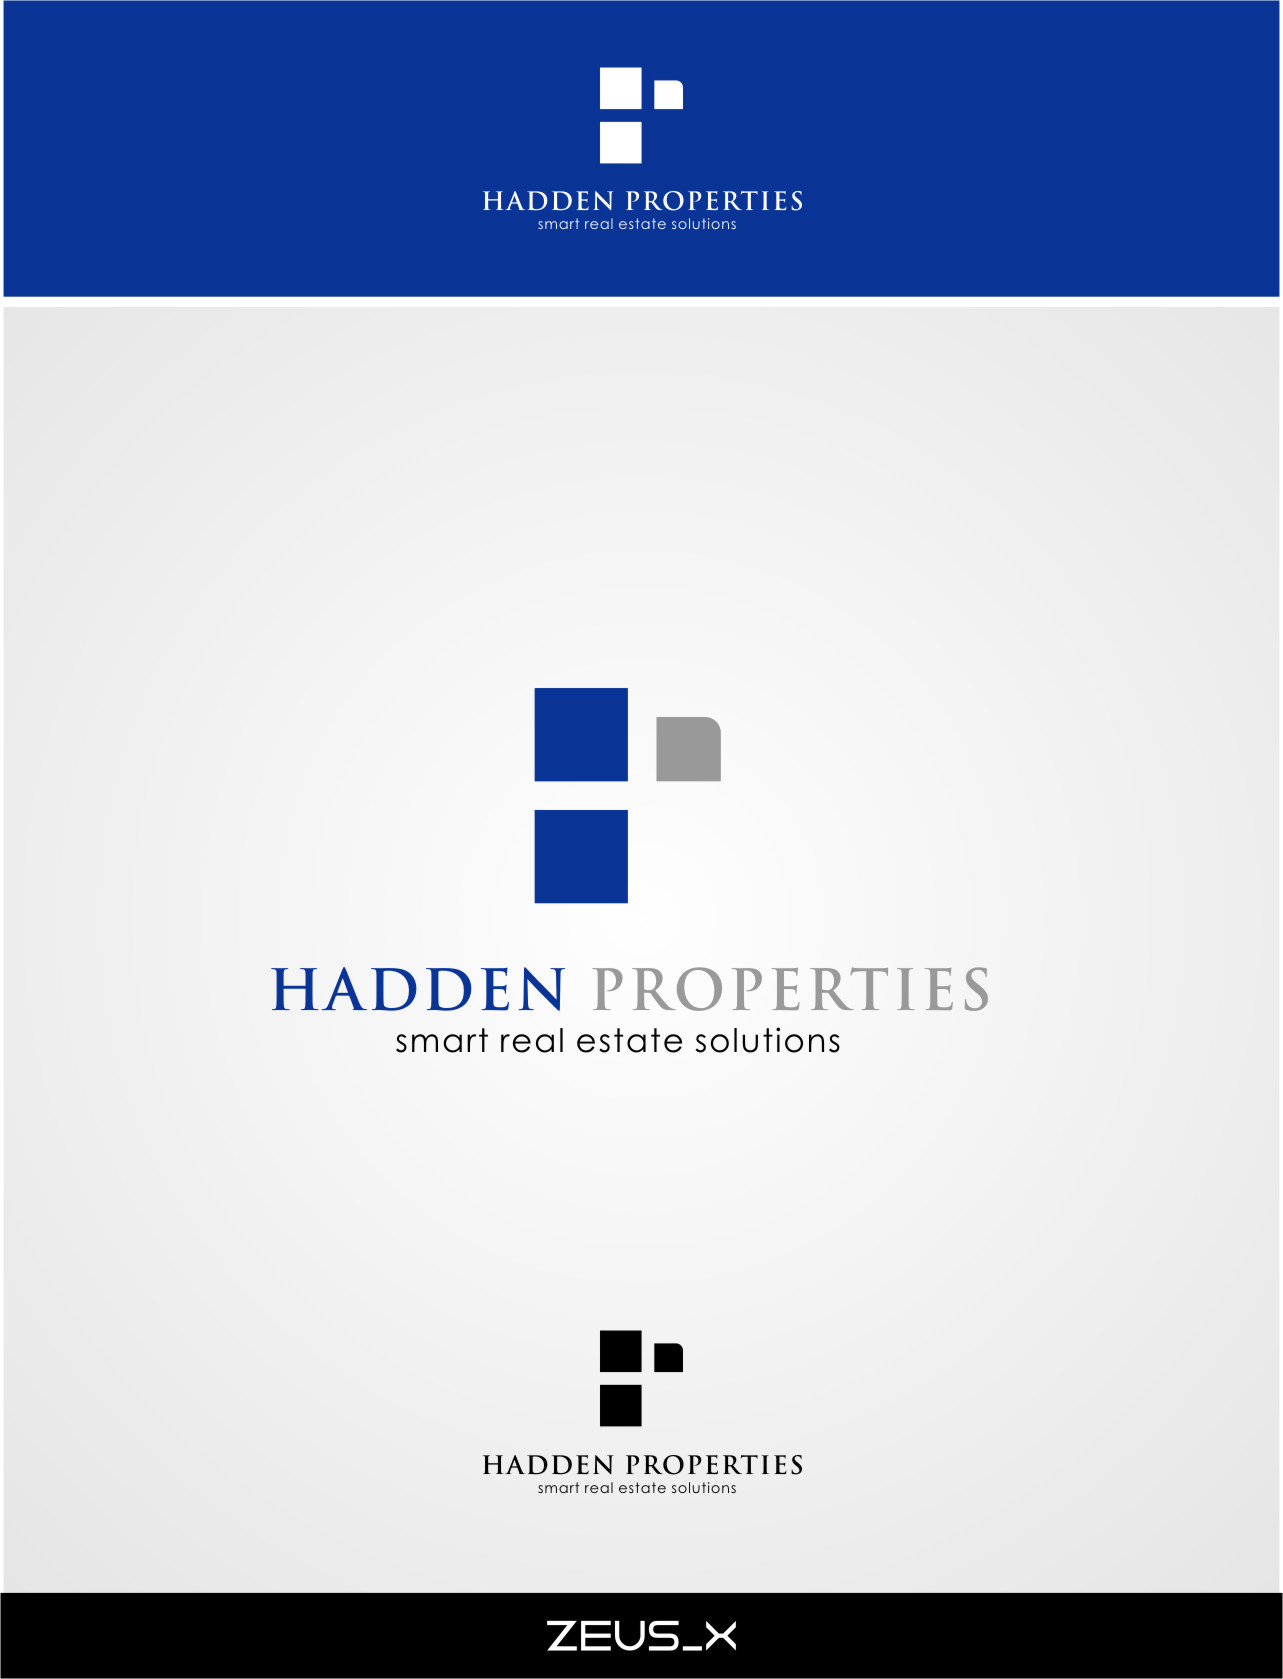 Logo Design by Ngepet_art - Entry No. 96 in the Logo Design Contest Artistic Logo Design for Hadden Properties.